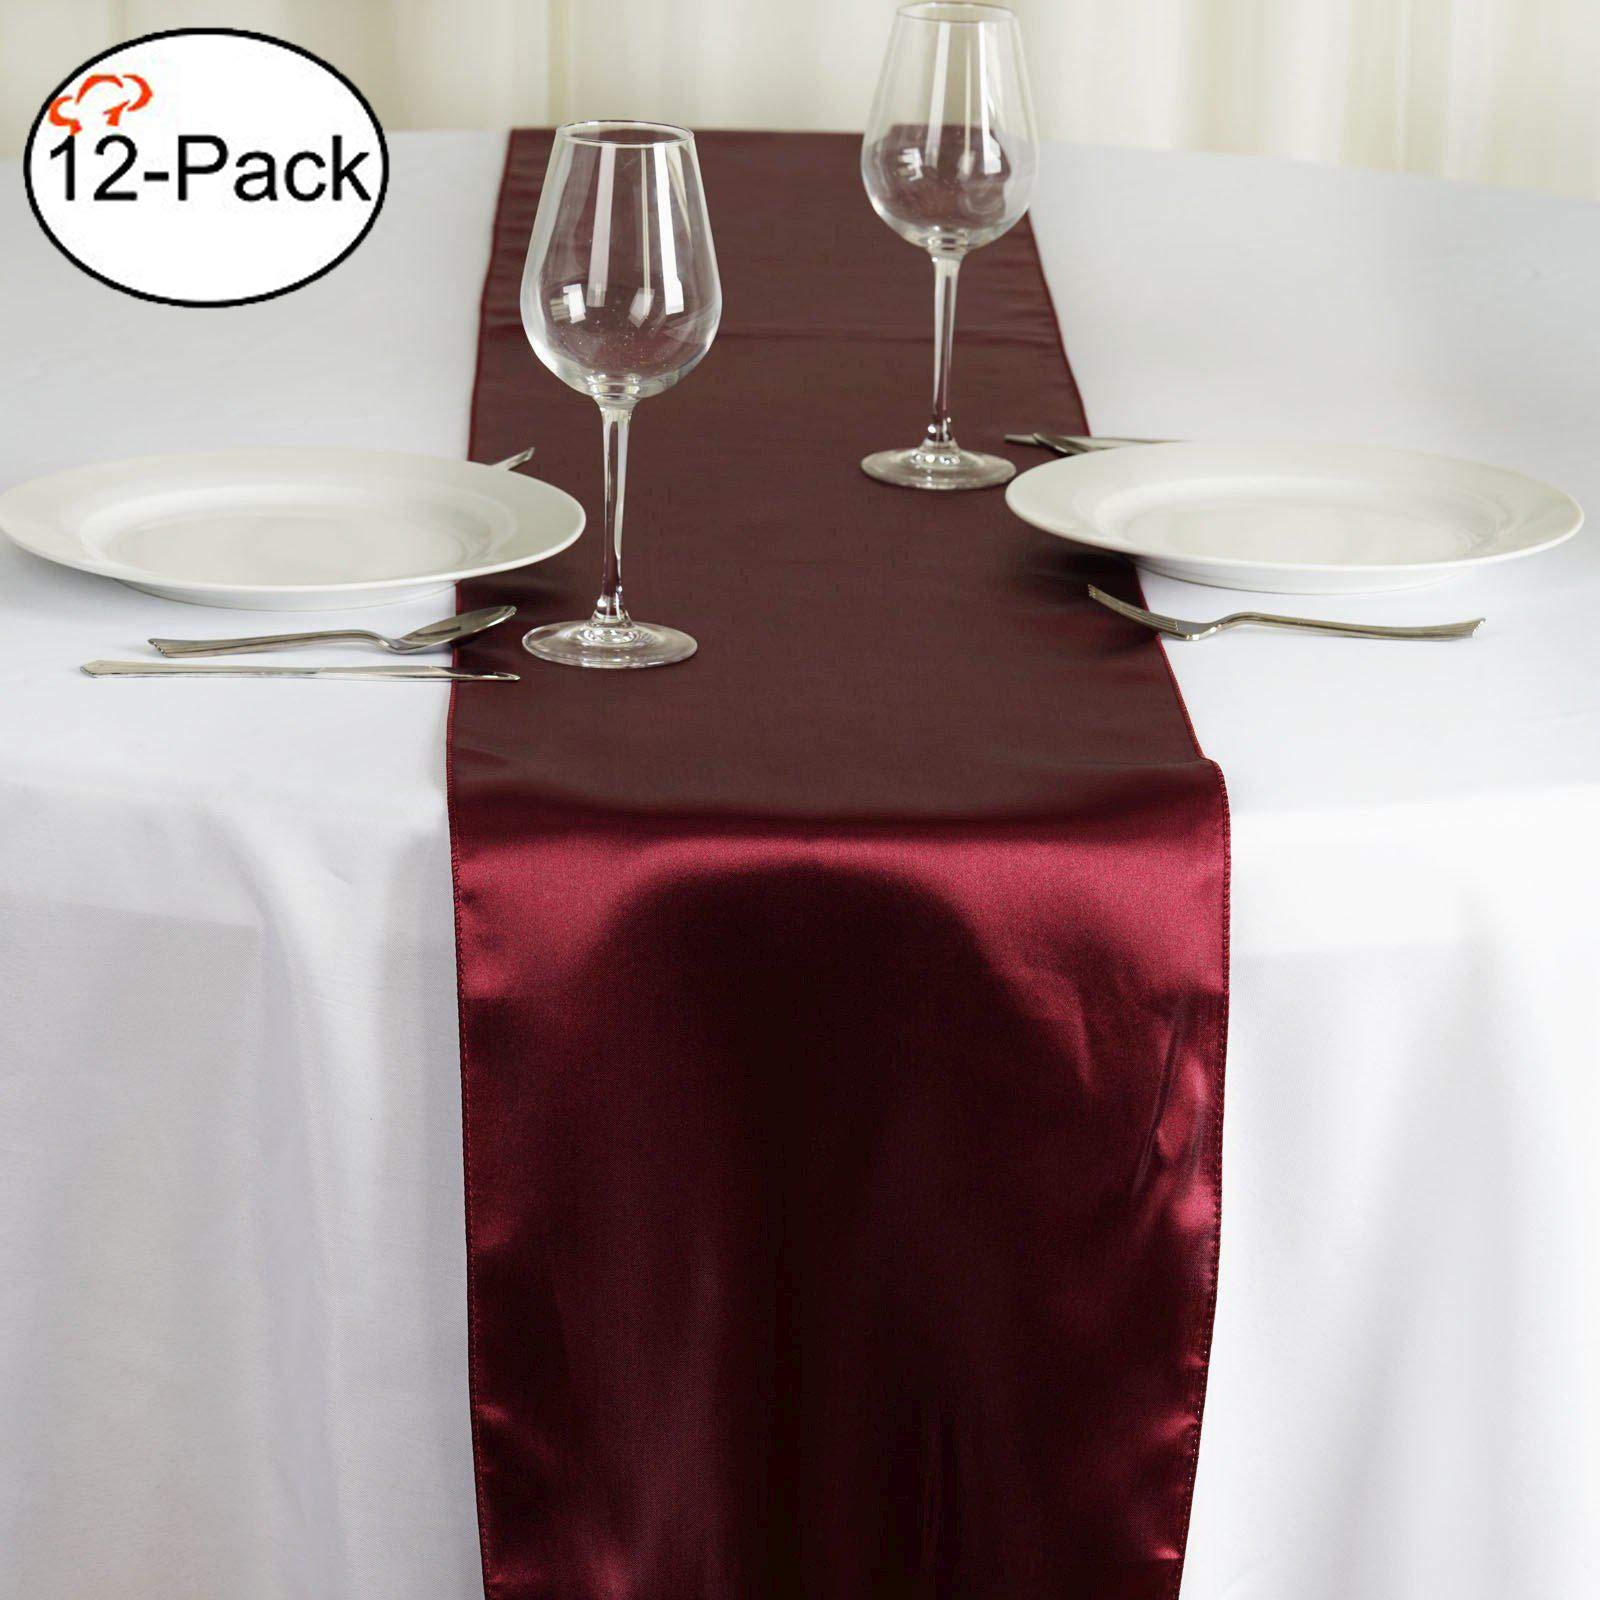 Tiger Chef 12-Pack Burgundy 12 x 108 inches Long Satin Table Runner for Wedding, Table Runners fit Rectange and Round Table Decorations for Birthday Parties, Banquets, Graduations, by Tiger Chef